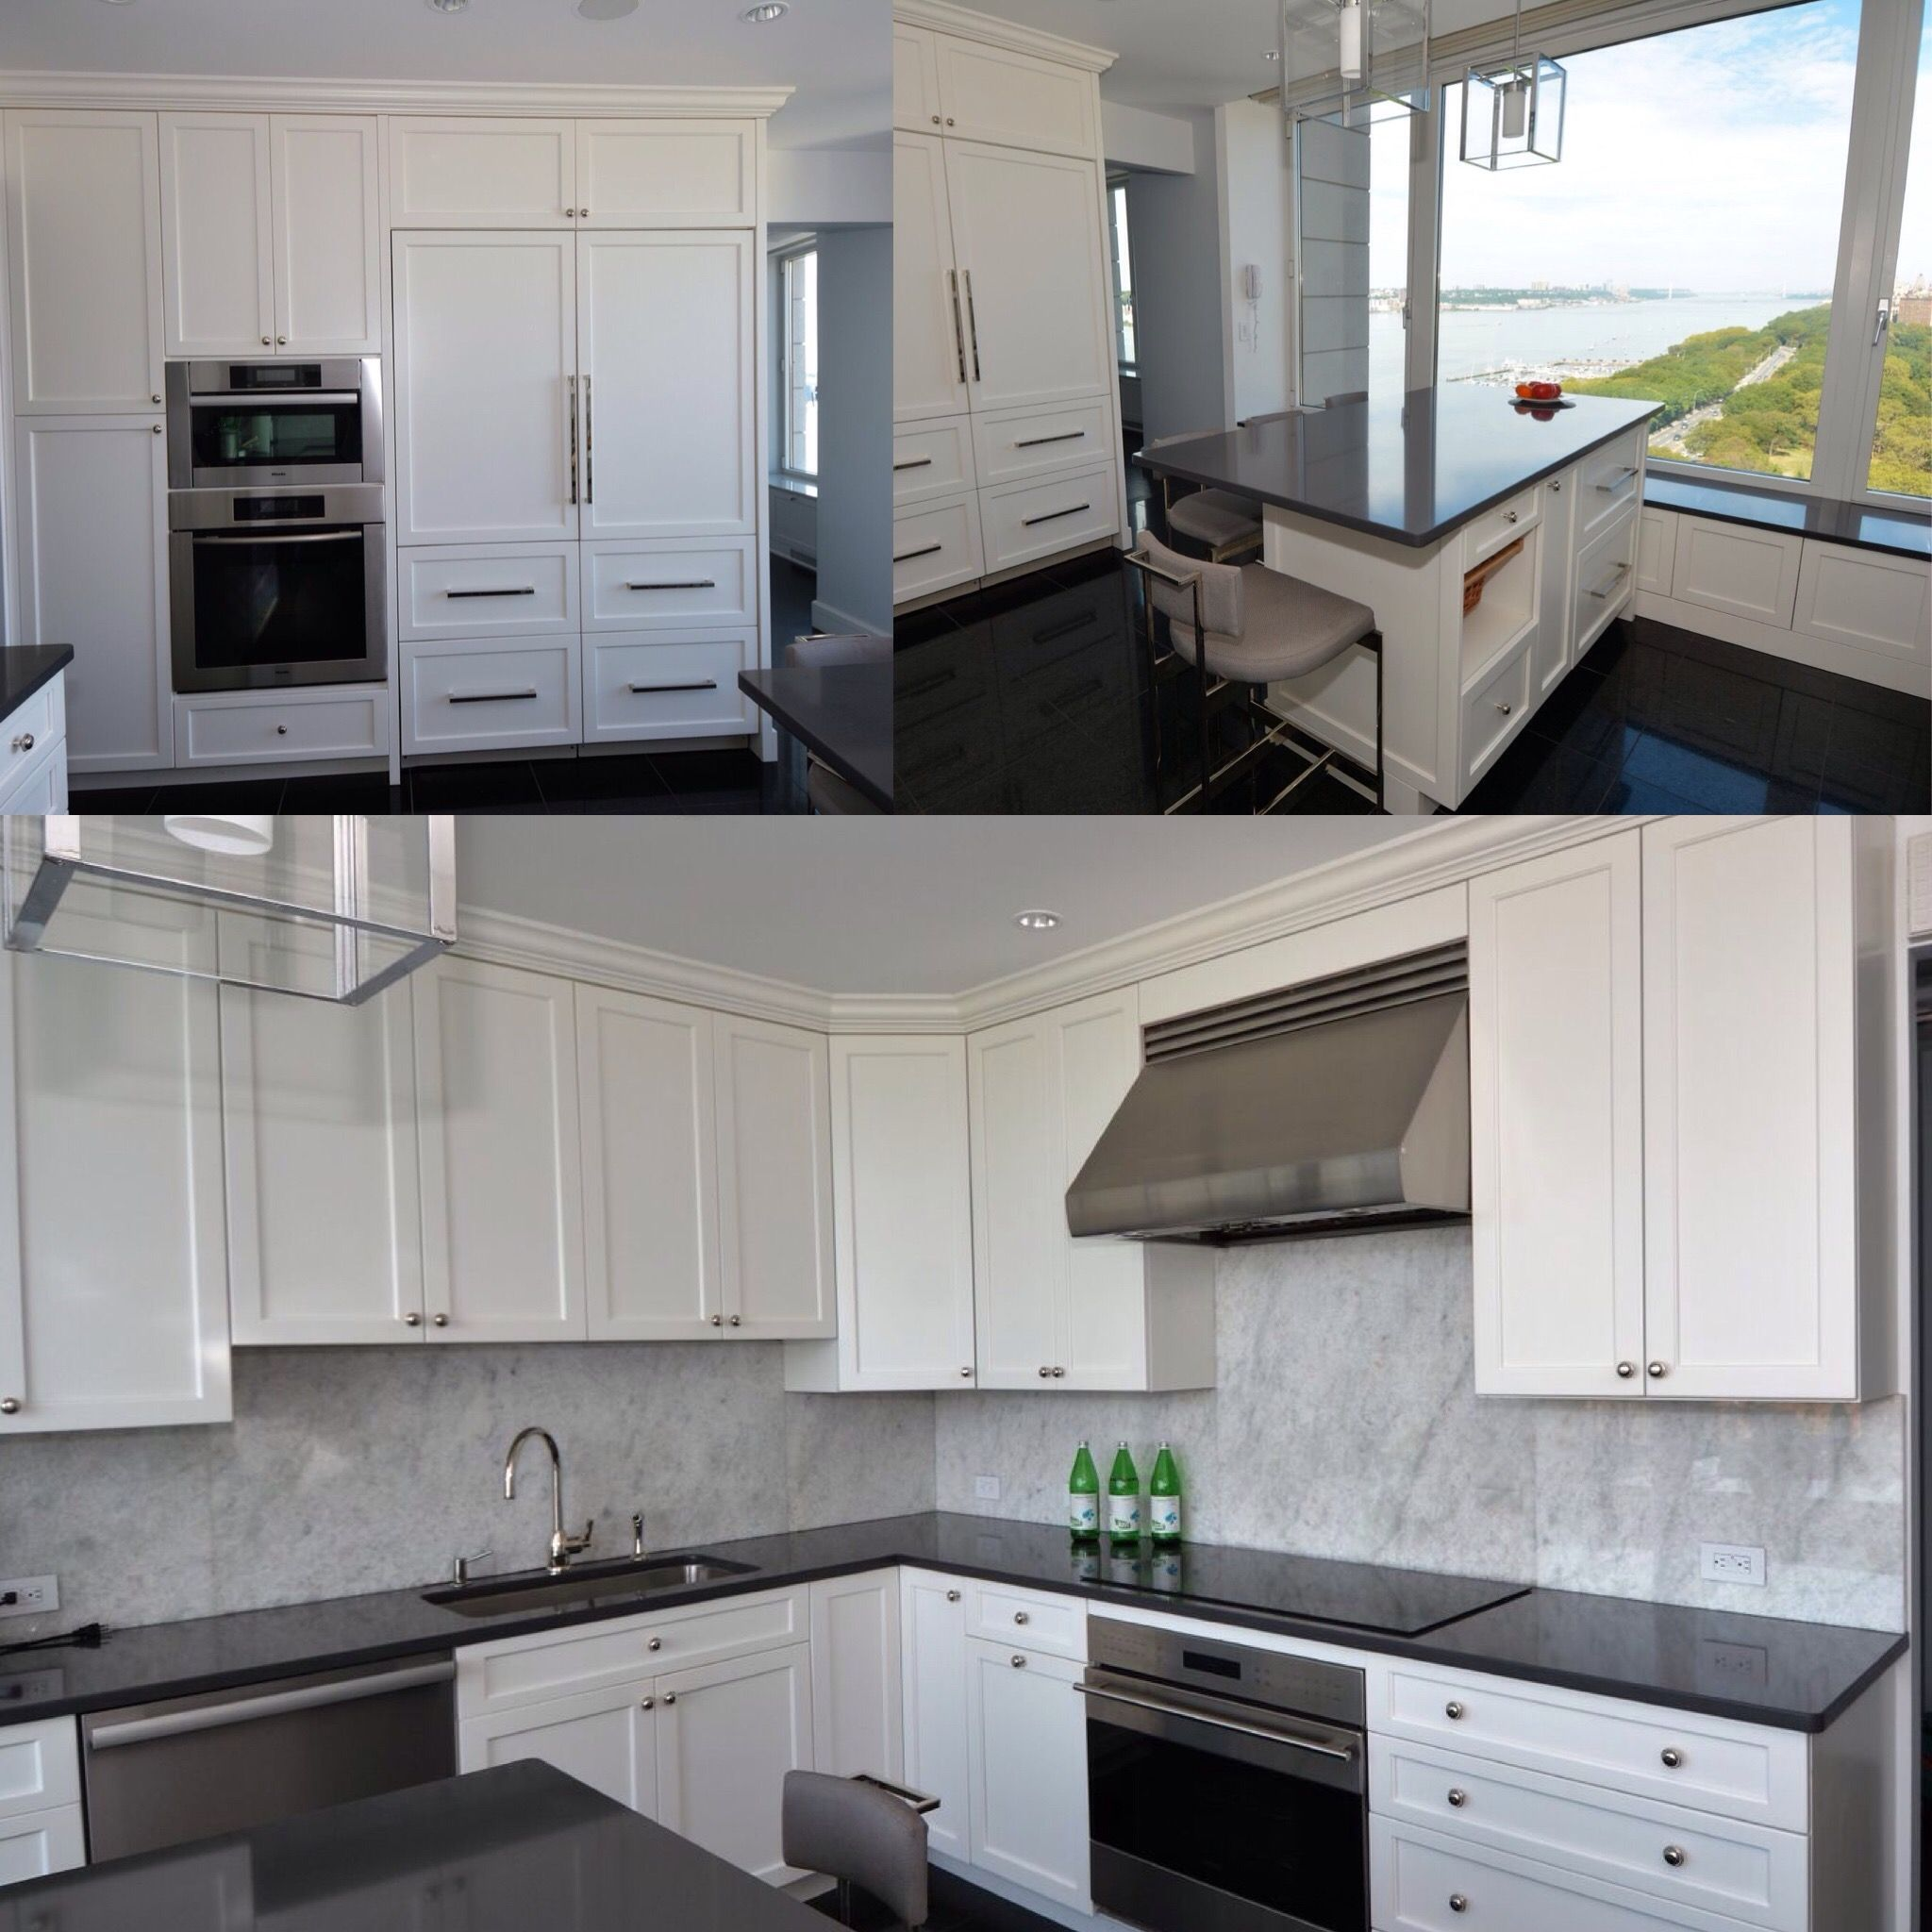 Here Is A Beautiful Kitchen Renovation Completed With The Help Of Majestic Kitchens Baths Designer Arthur Sleek Kitchen Design Sleek Kitchen Kitchen Remodel